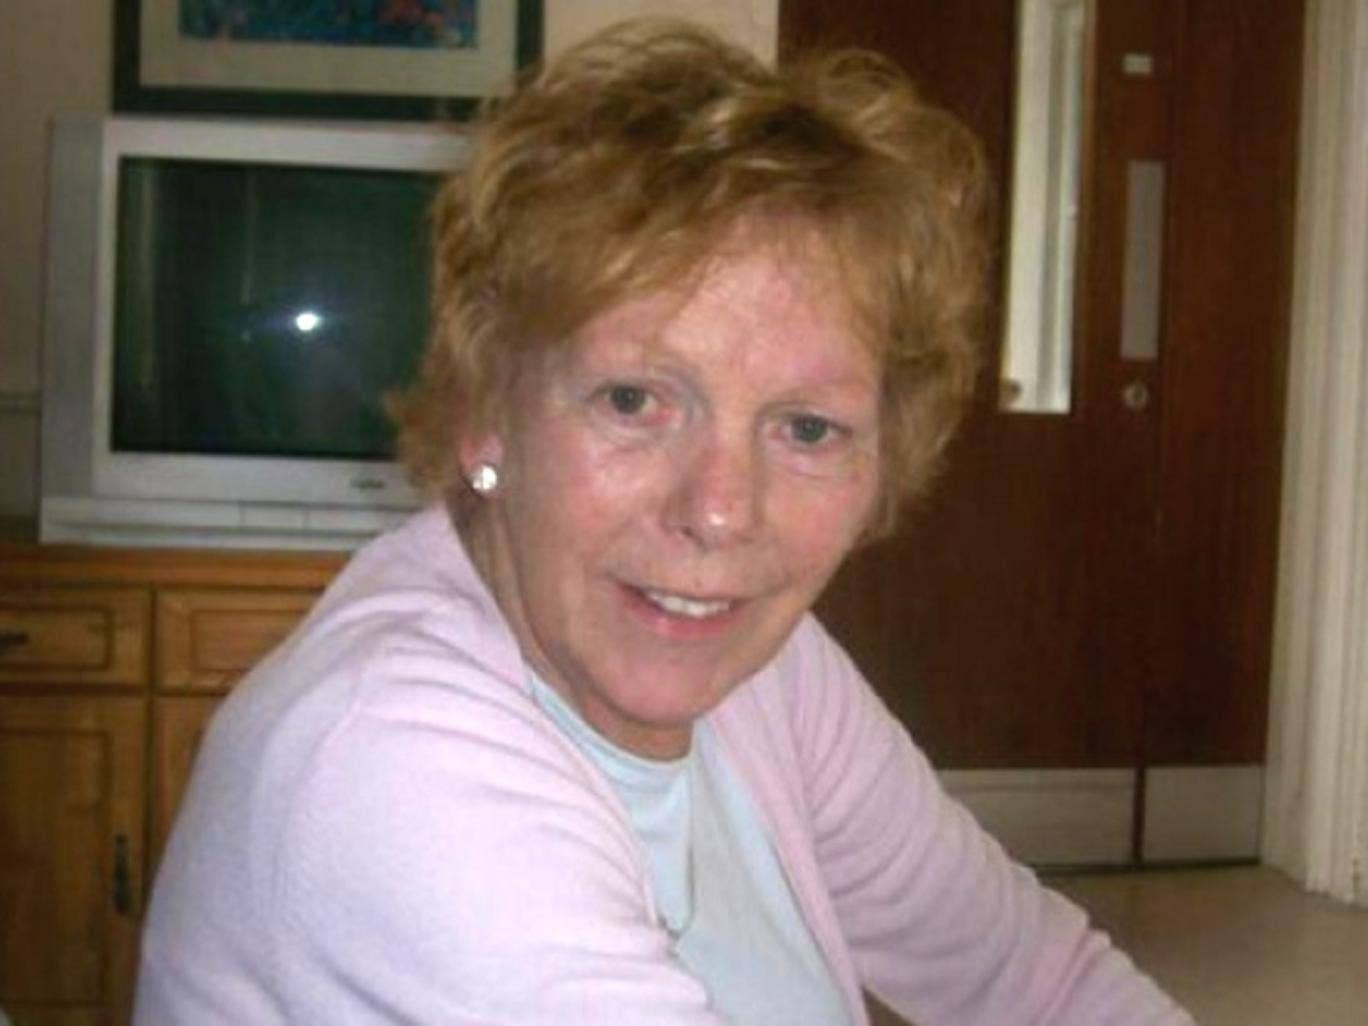 Philomena Dunleavy's body was dismembered before being buried